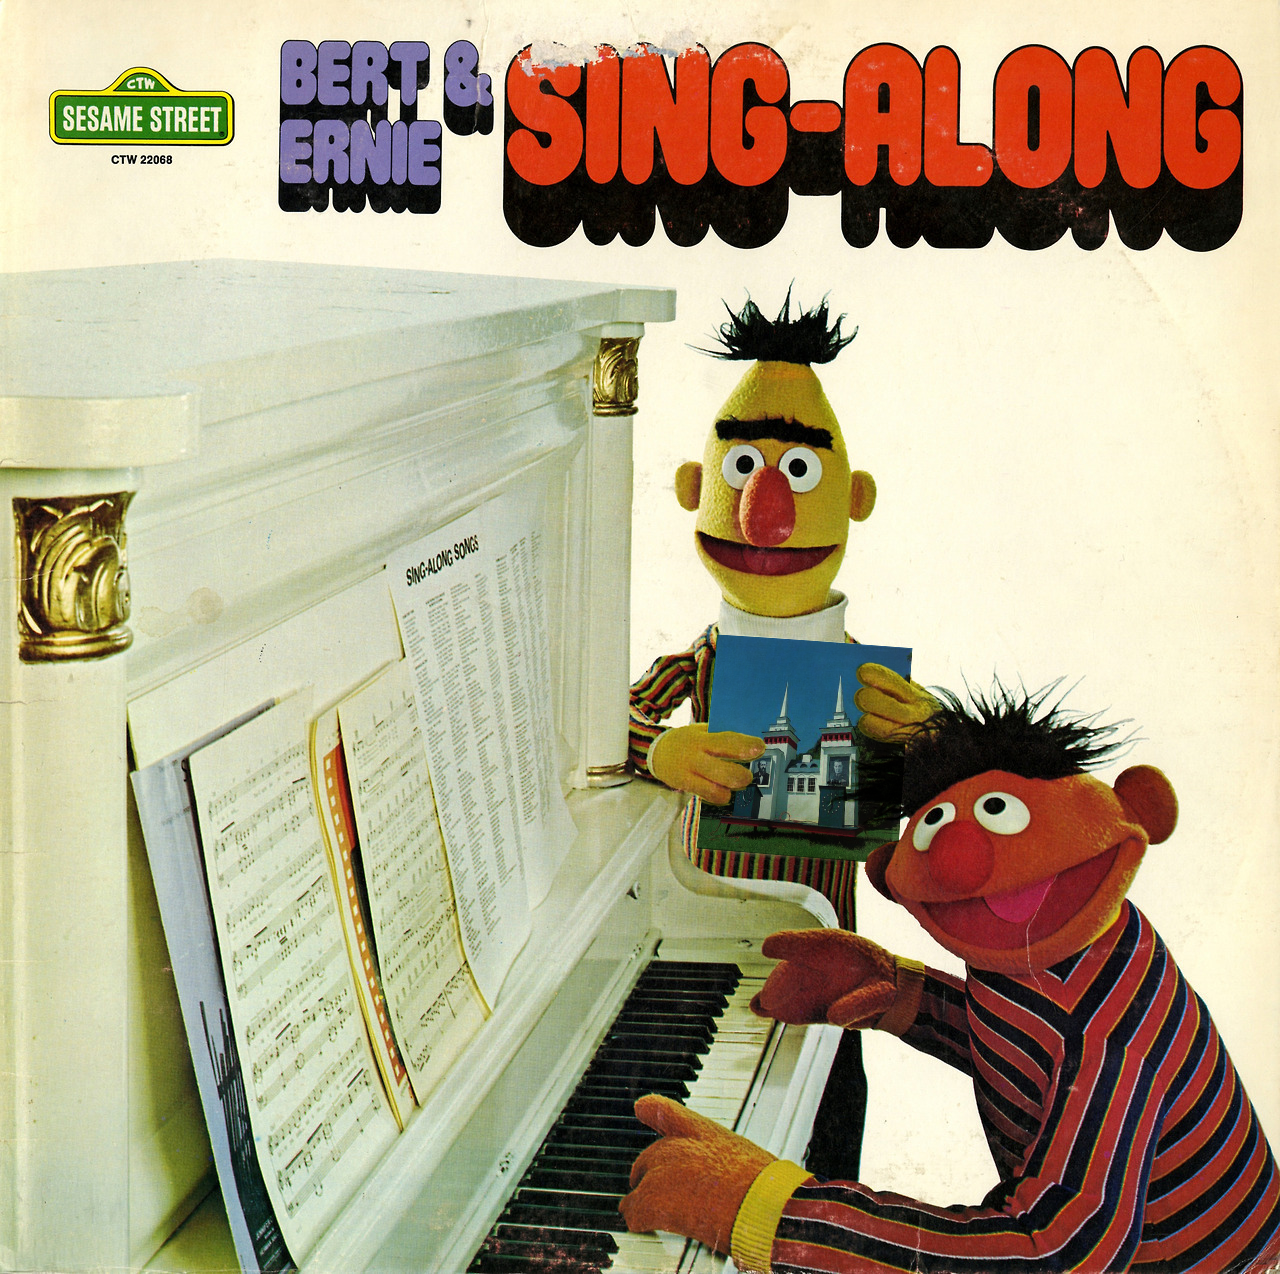 Ernie plays piano and Bert holds a copy of the album Lincoln.